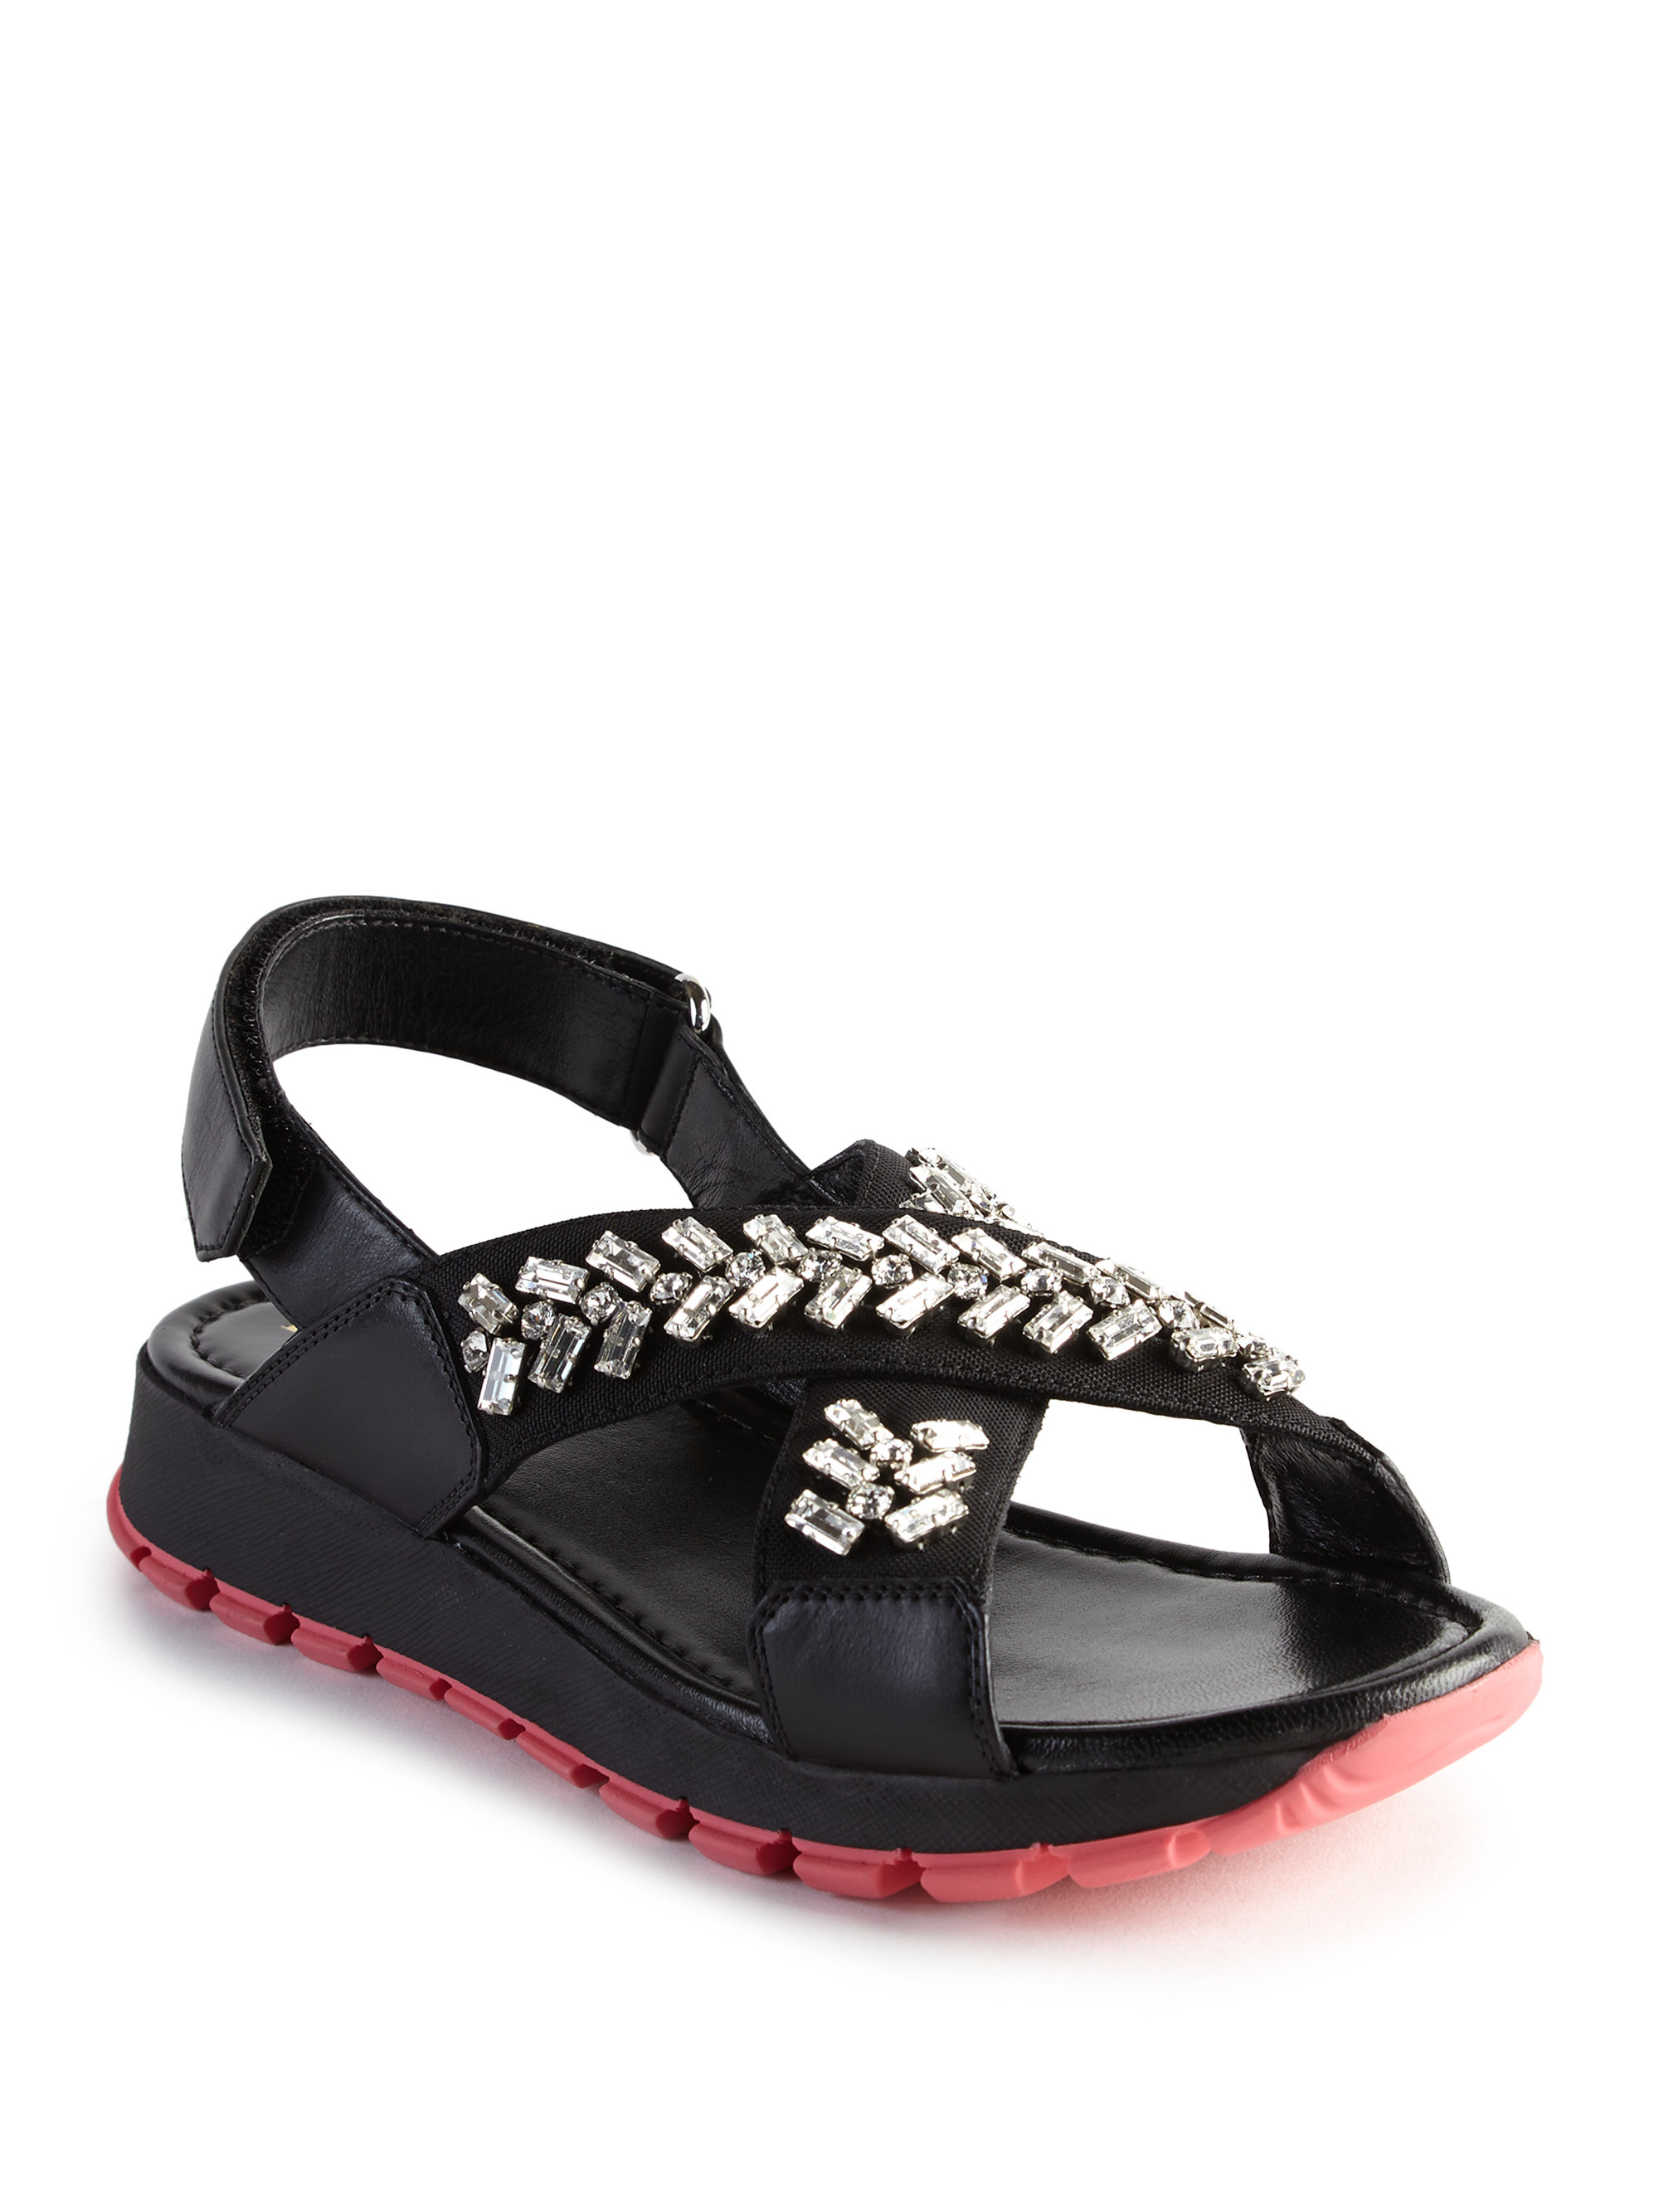 Prada Embellished leather sandals real cheap price excellent cheap price YYJi7N7Zw6